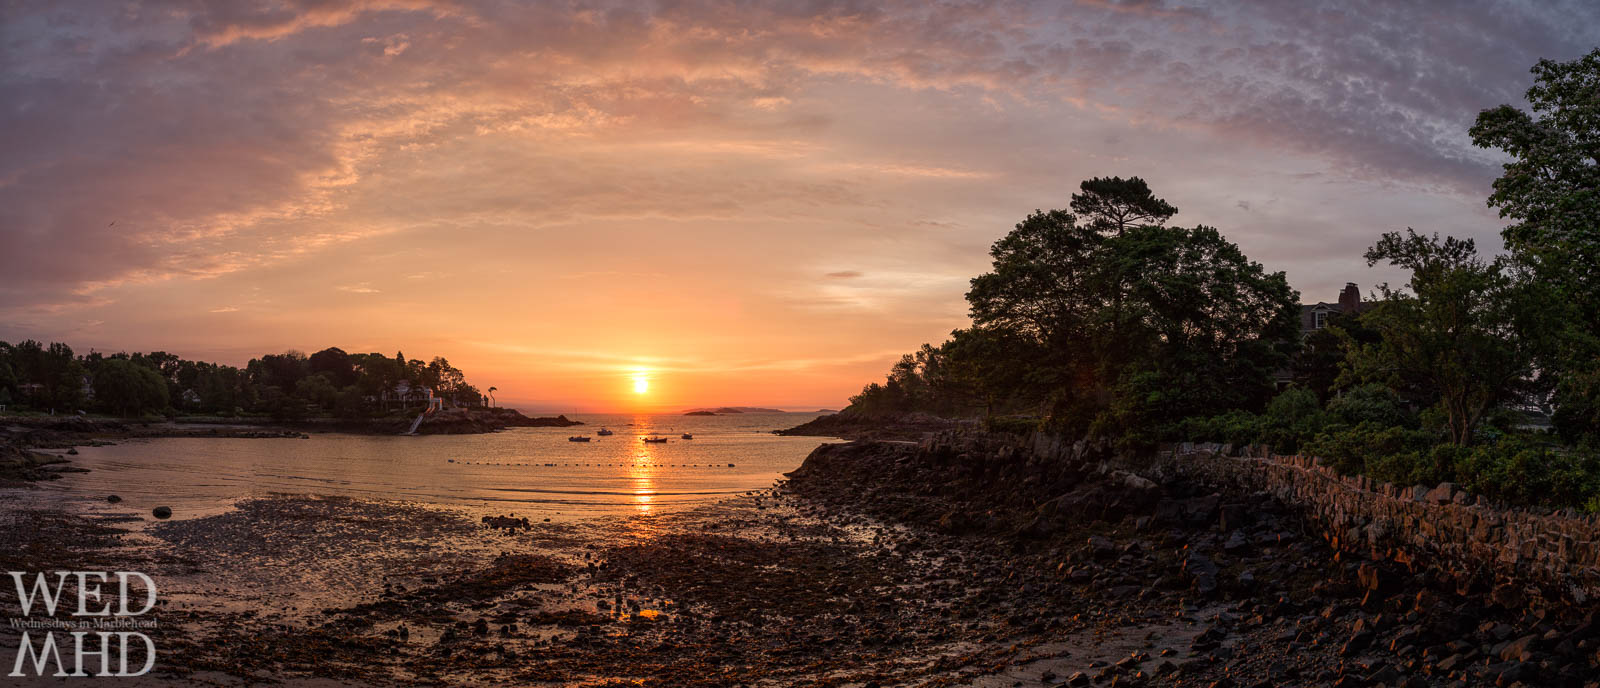 Doliber Cove and Grace Oliver Beach are captured at sunrise in this panoramic view encompassing Peaches Point and Brown's Island